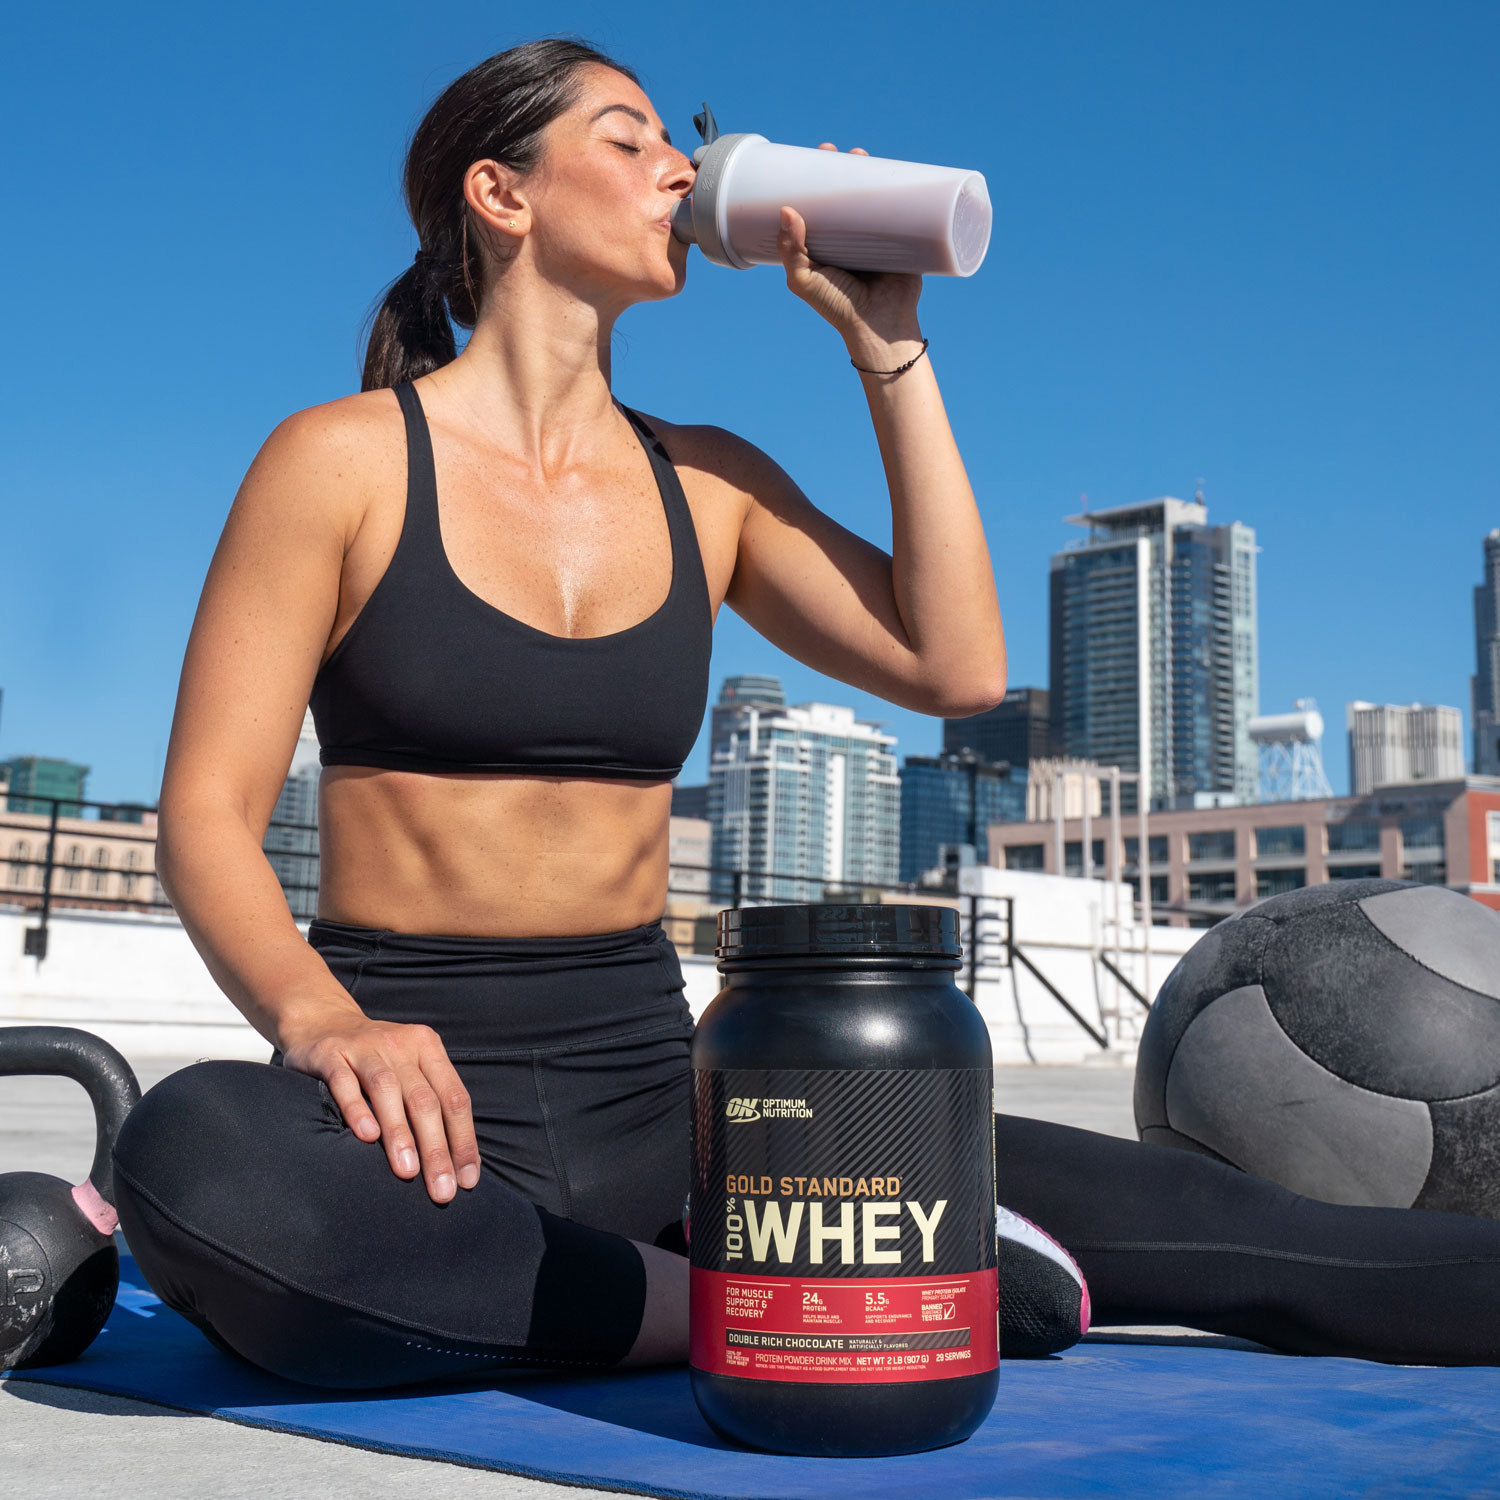 GOLD STANDARD 100% WHEY™ By OPTIMUM NUTRITION™ Has A New Look, Same Formula